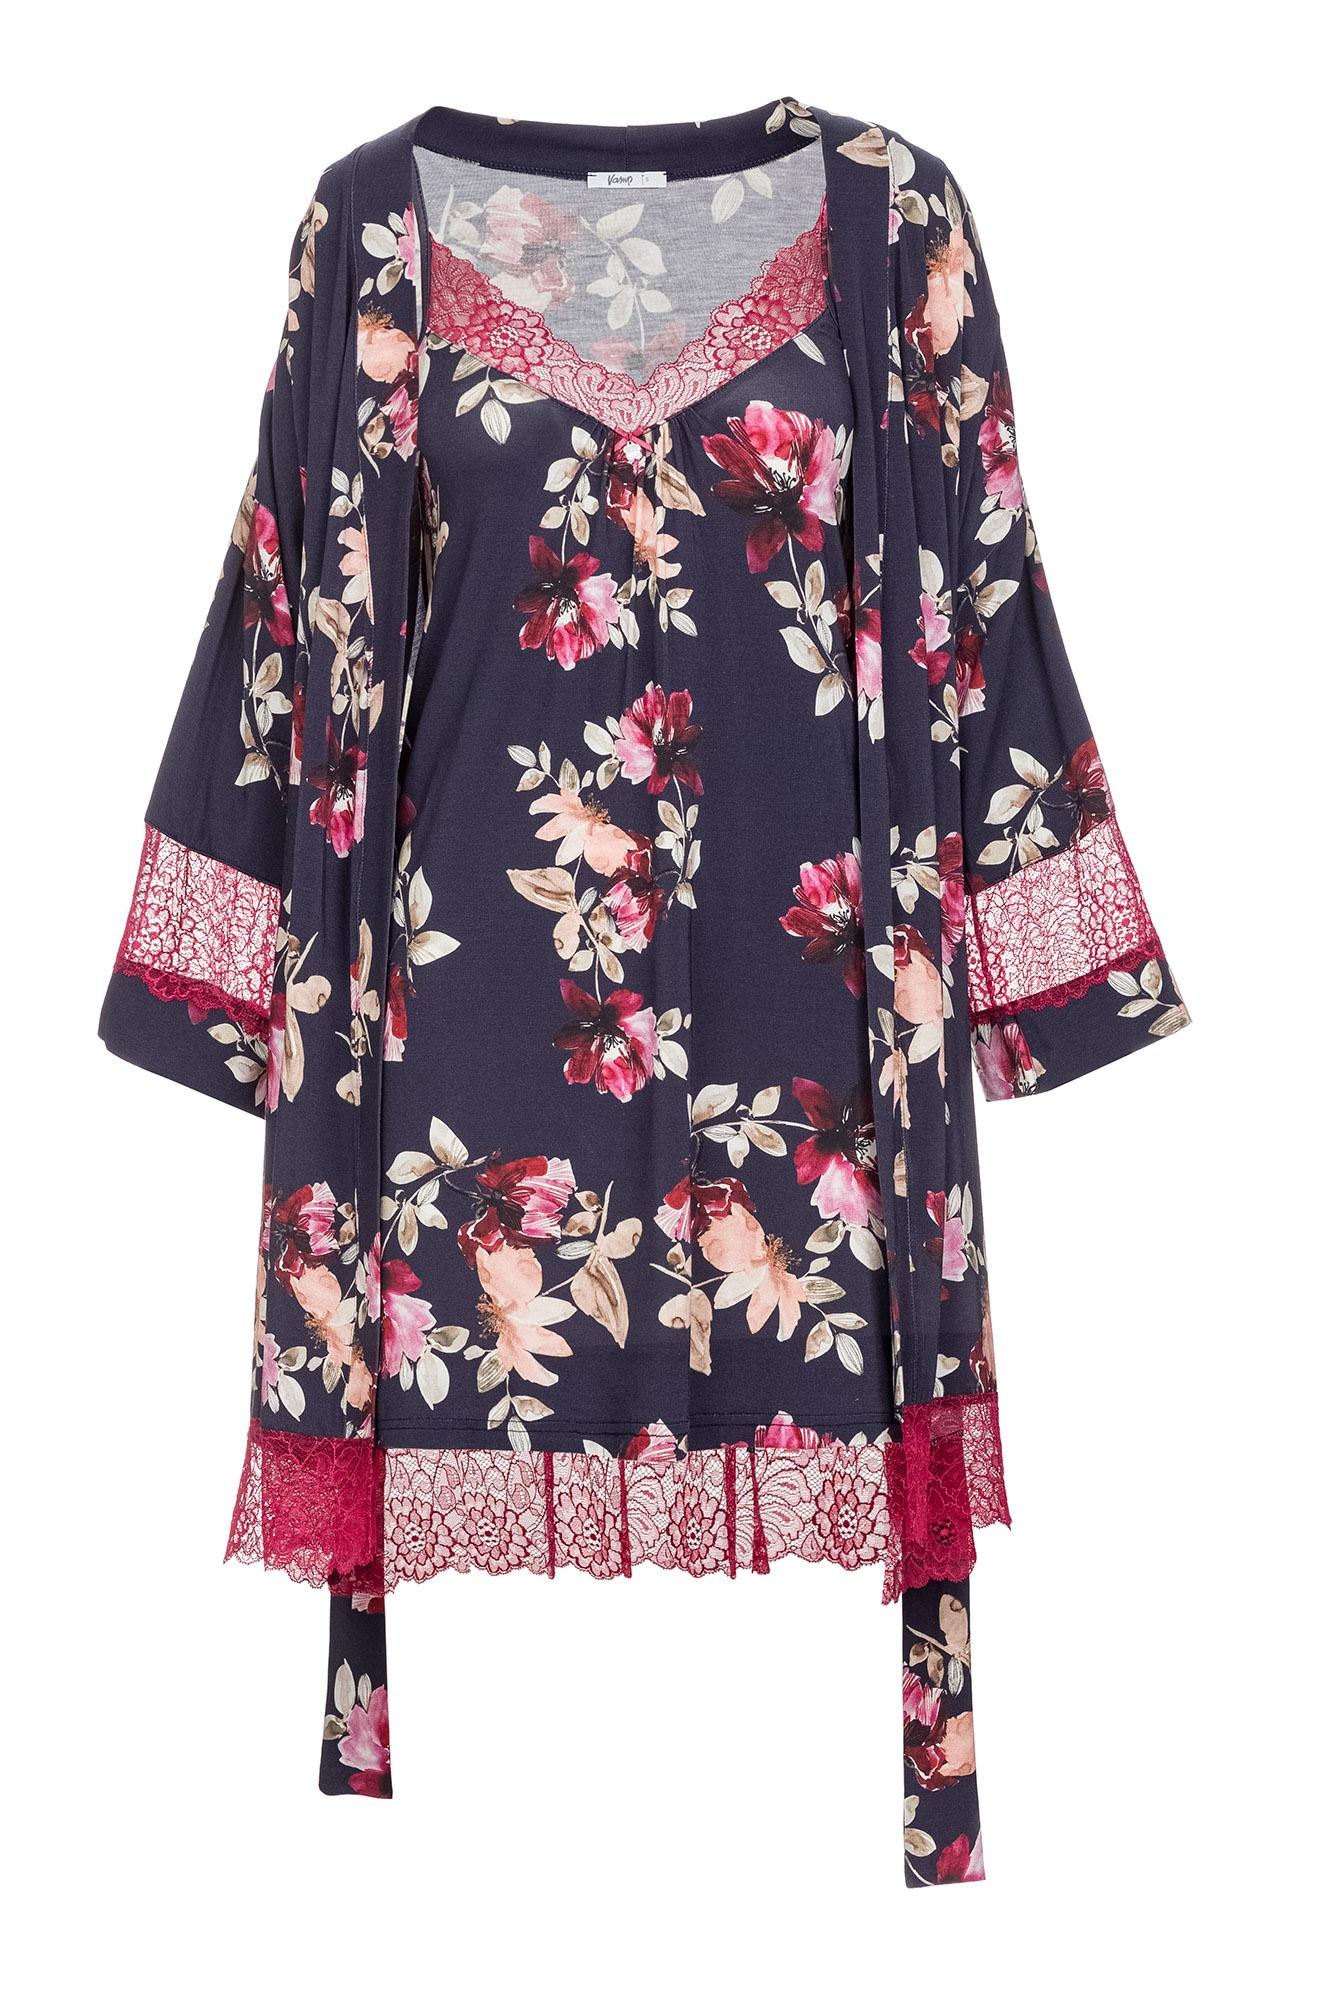 Women's Floral Nightgown and Robe